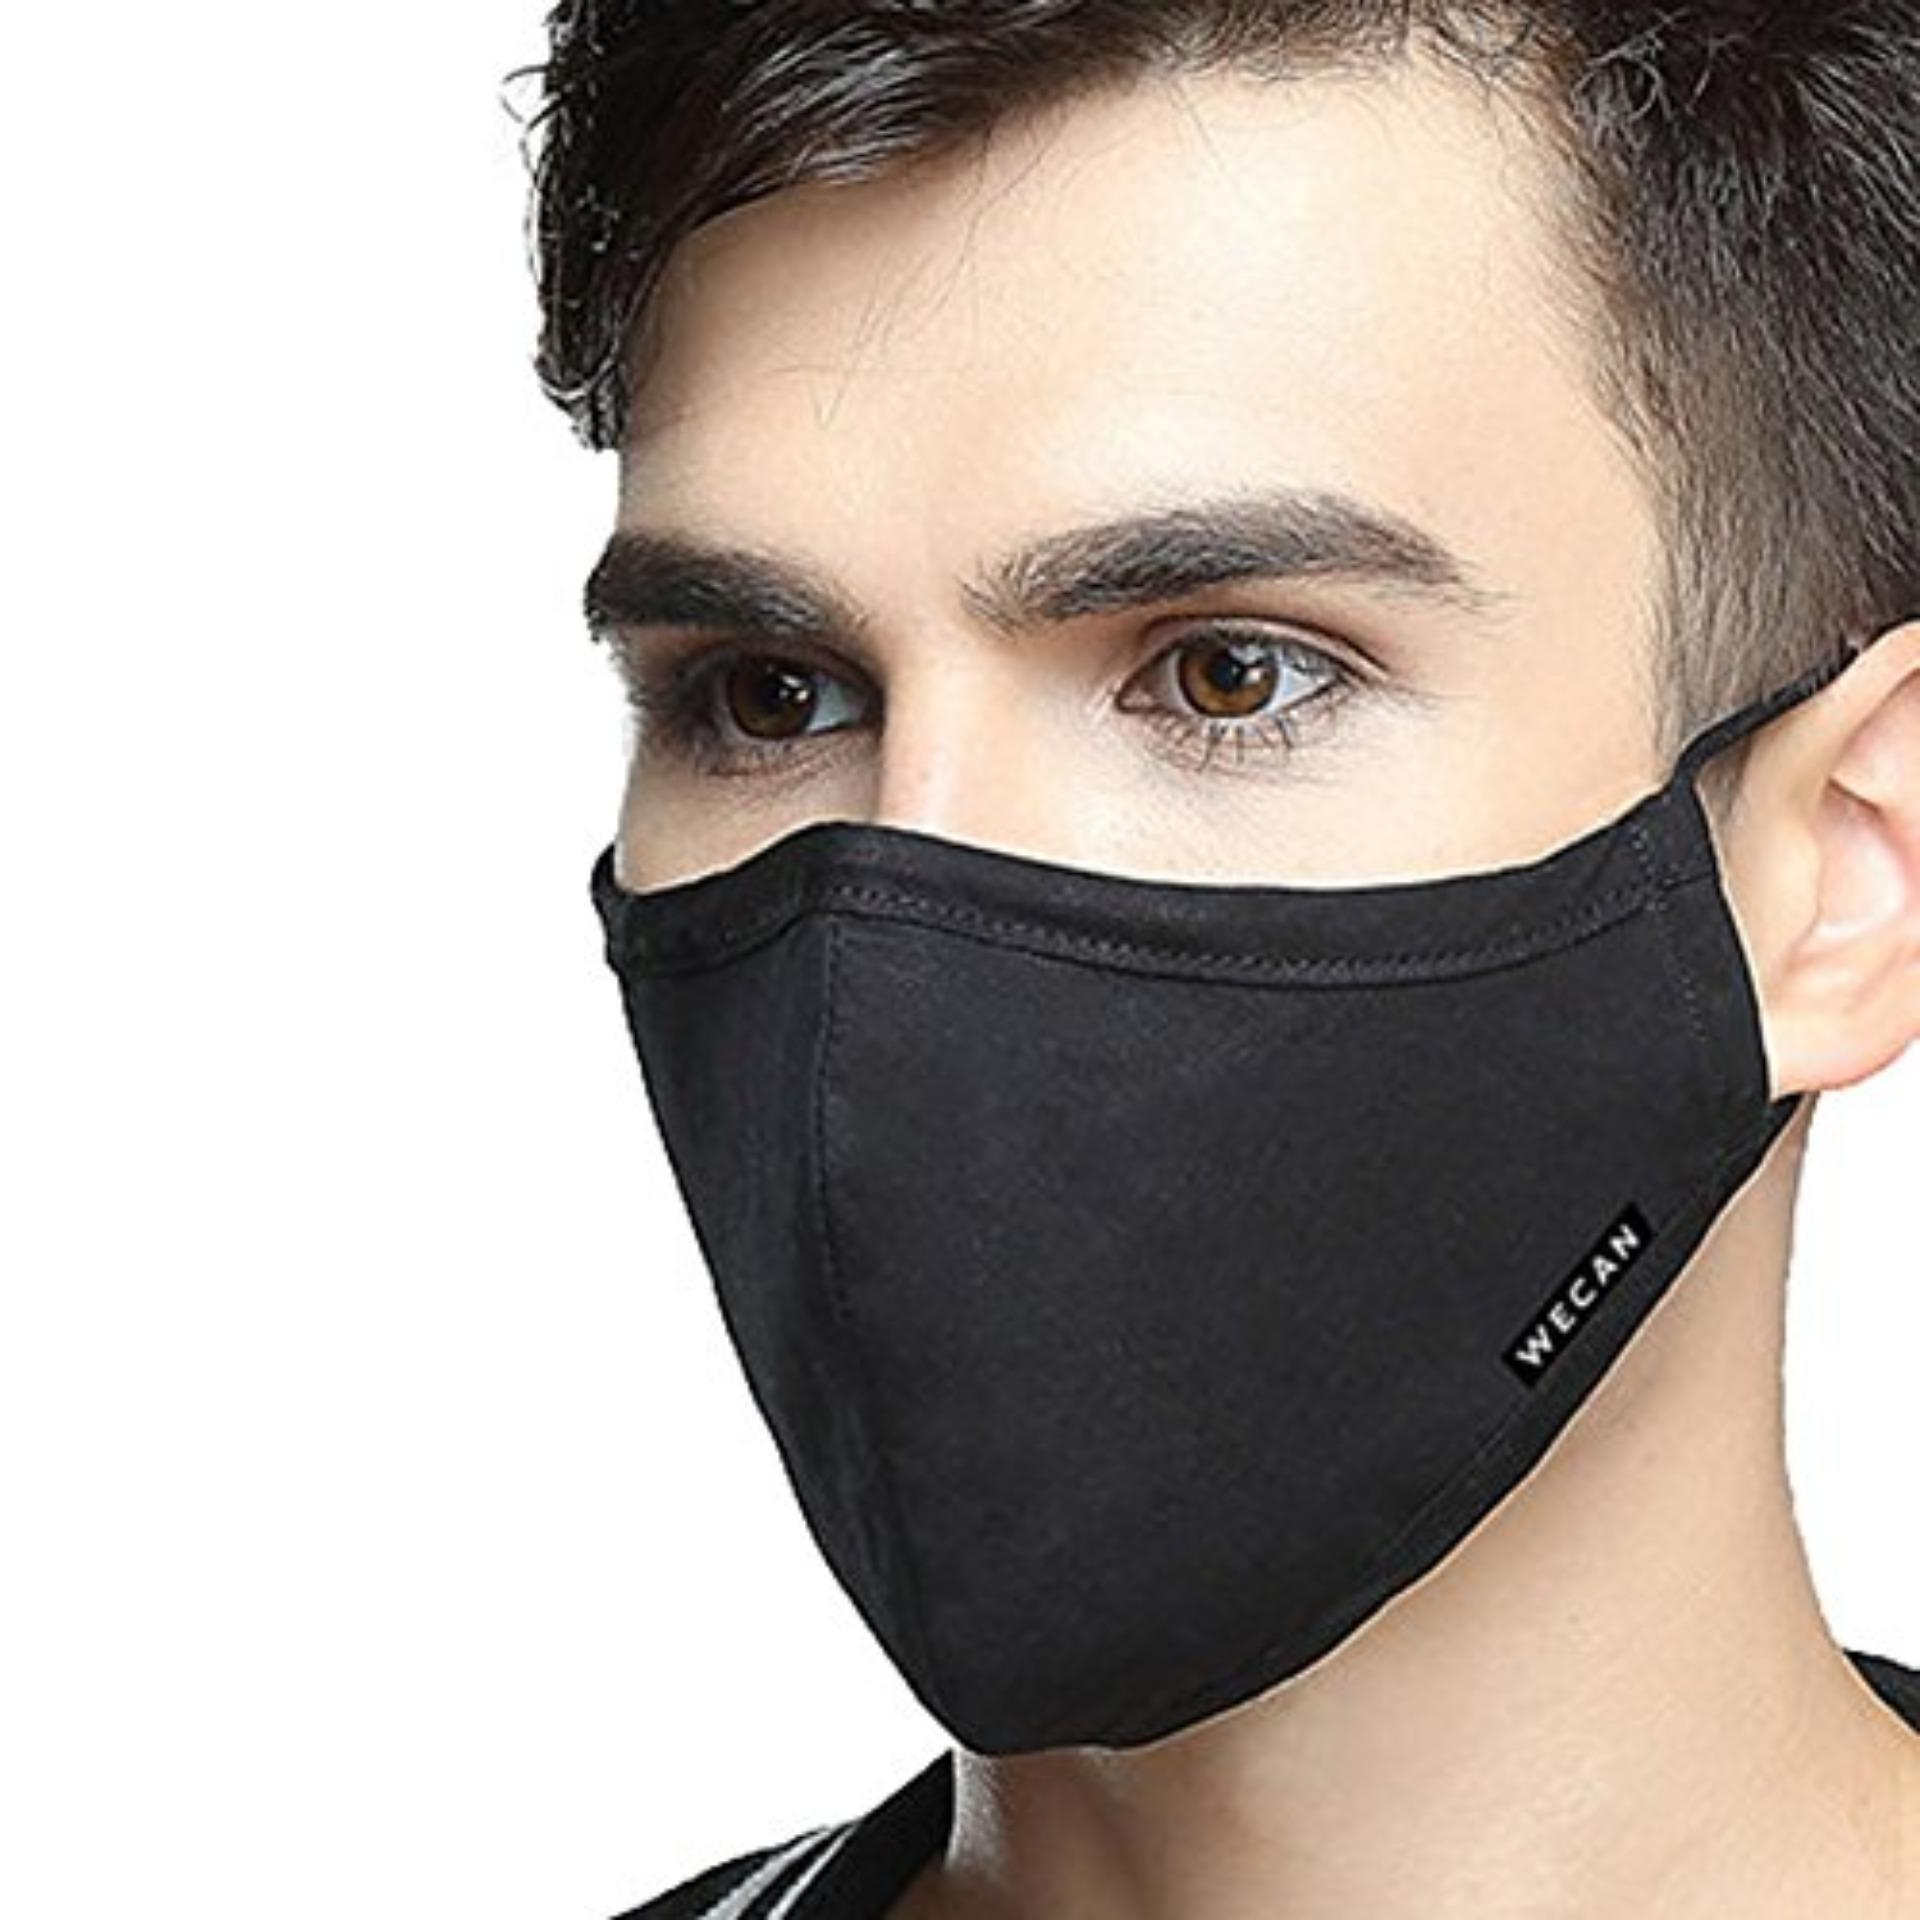 Back To Search Resultsbeauty & Health Personal Health Care 1pcs Mask Dust Mask Anti Pollution Mask Pm2.5 Activated Carbon Filter Insert Can Be Washed Reusable Pollen Cotton Mouth Mask